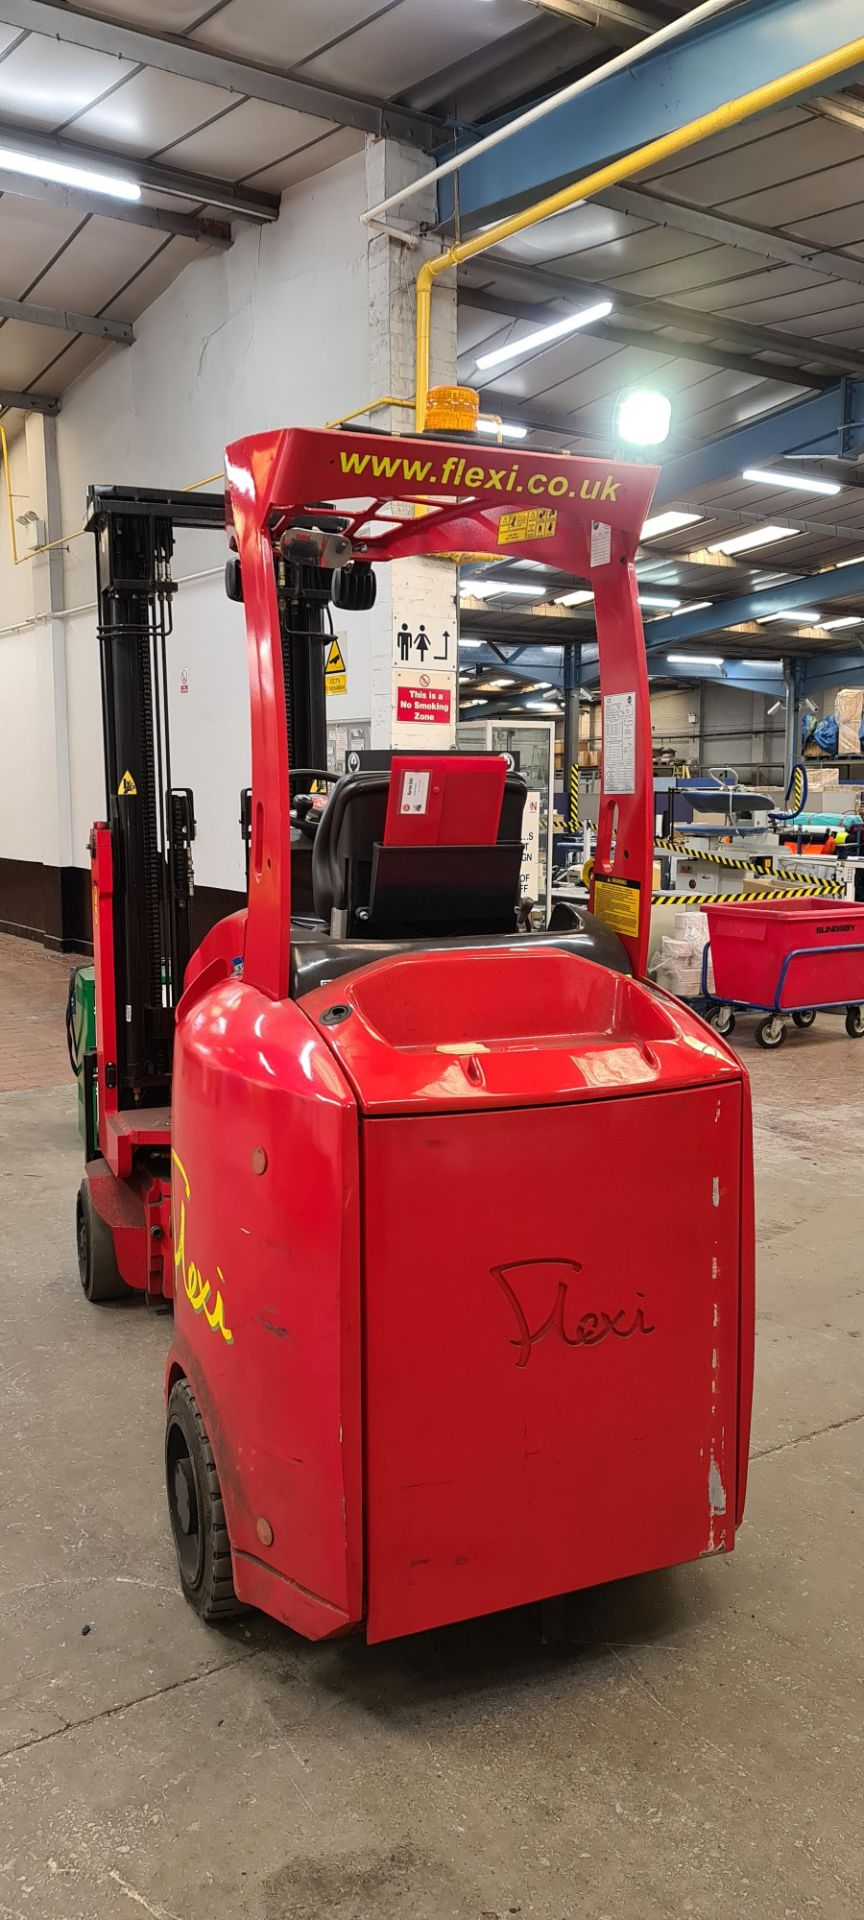 2014 Flexi Euro AC 'bendy' electric Fork Lift Truck - Image 5 of 29